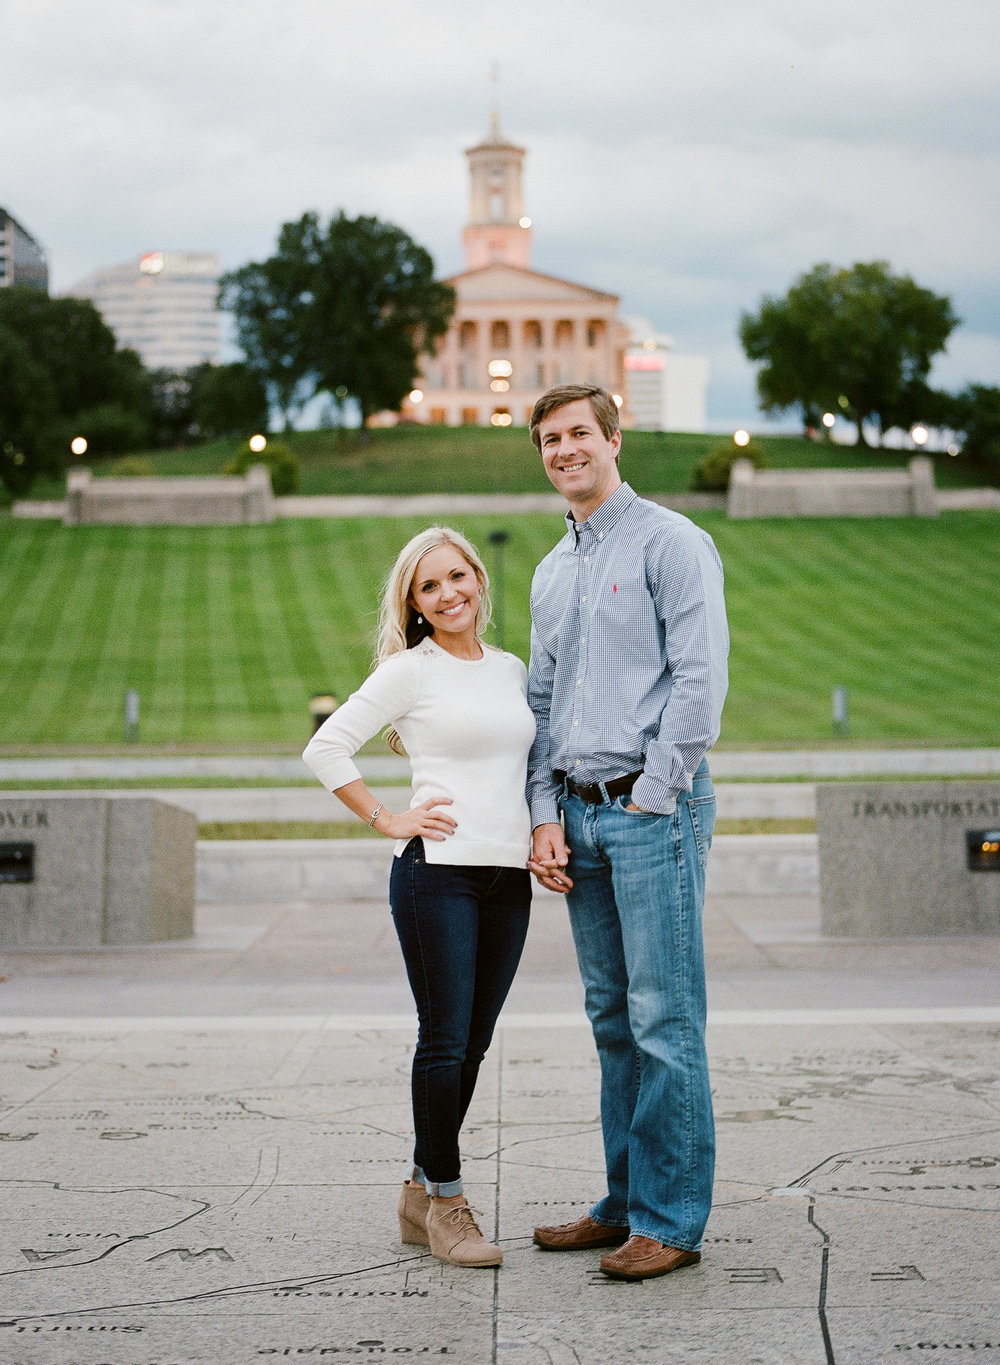 Engagement session location ideas in Nashville